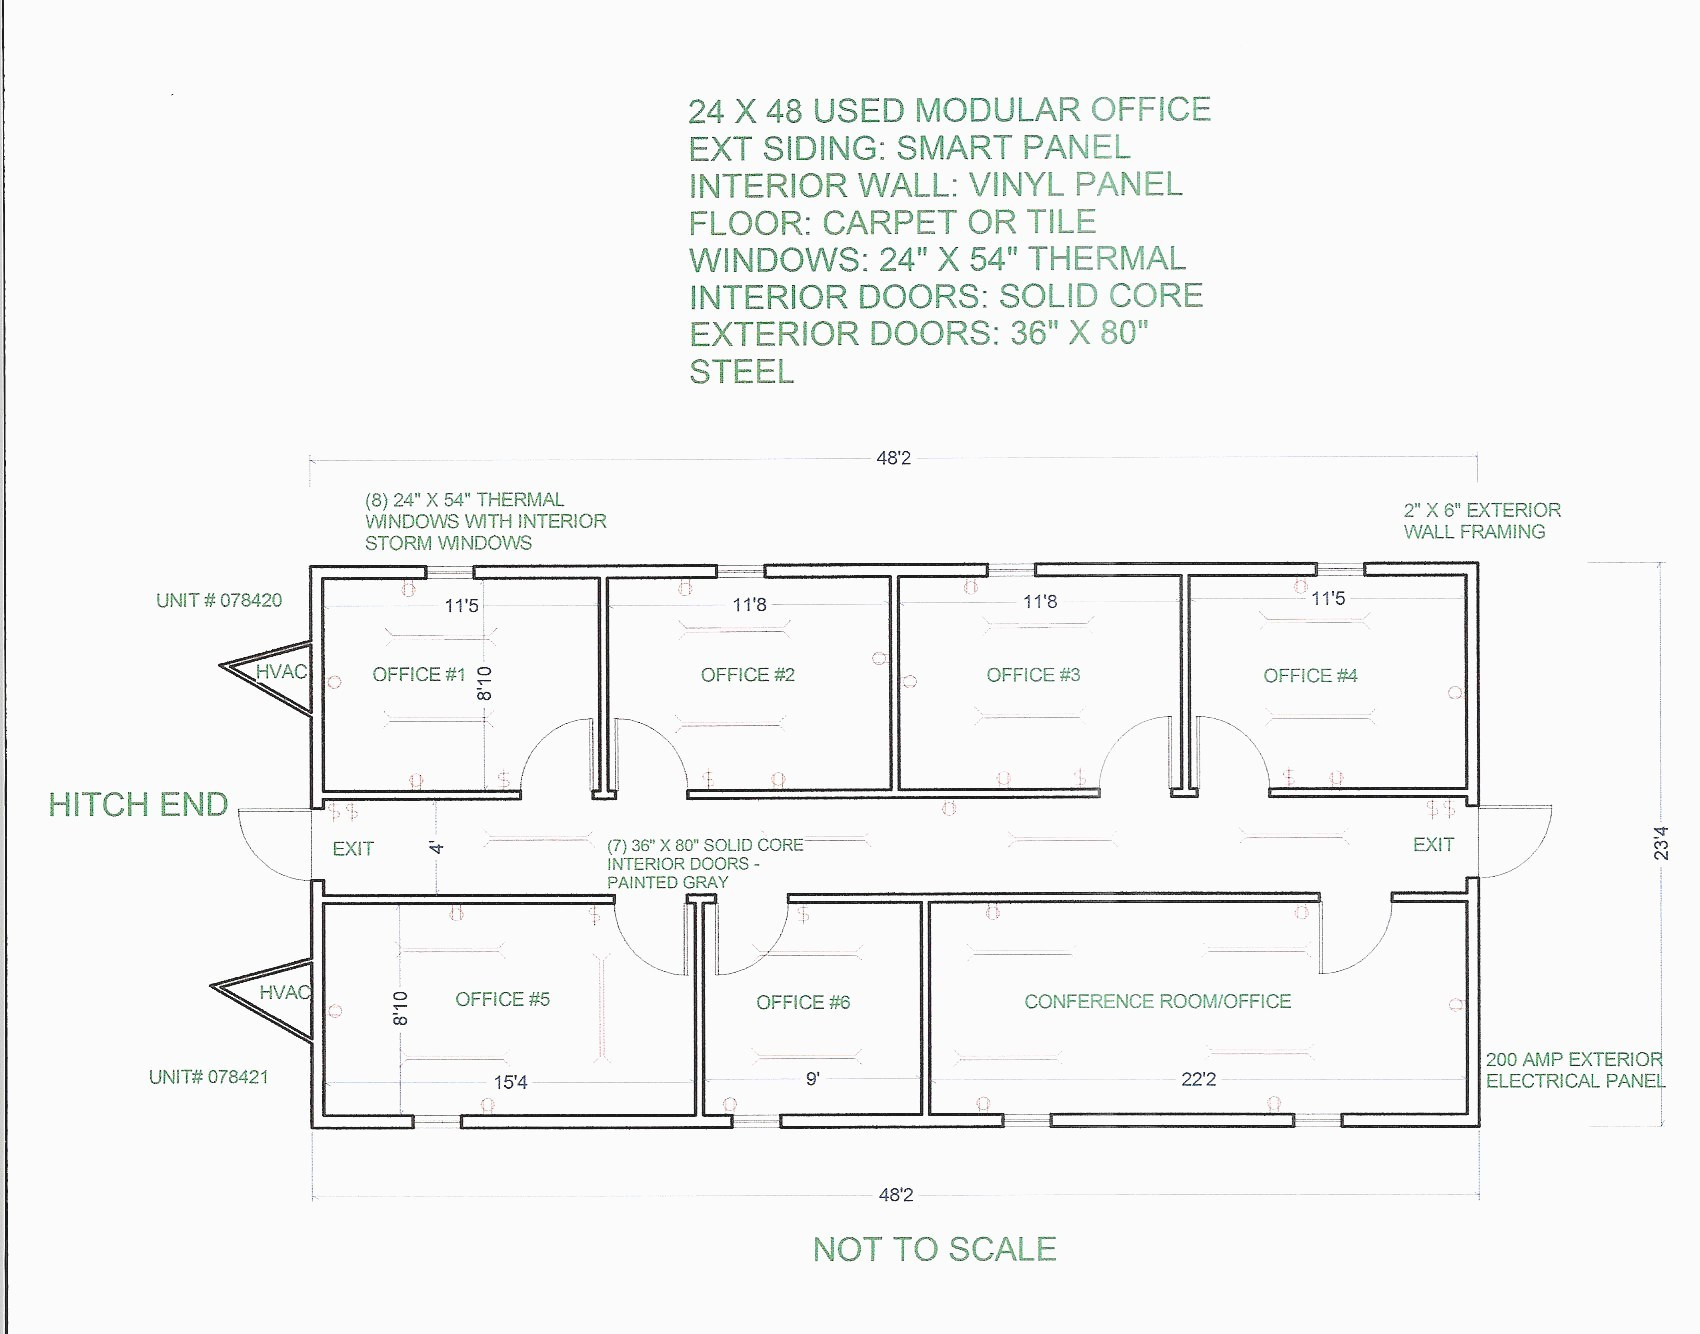 Electrical Wiring Diagram For Mobile Home | Wiring Library - Double Wide Mobile Home Electrical Wiring Diagram